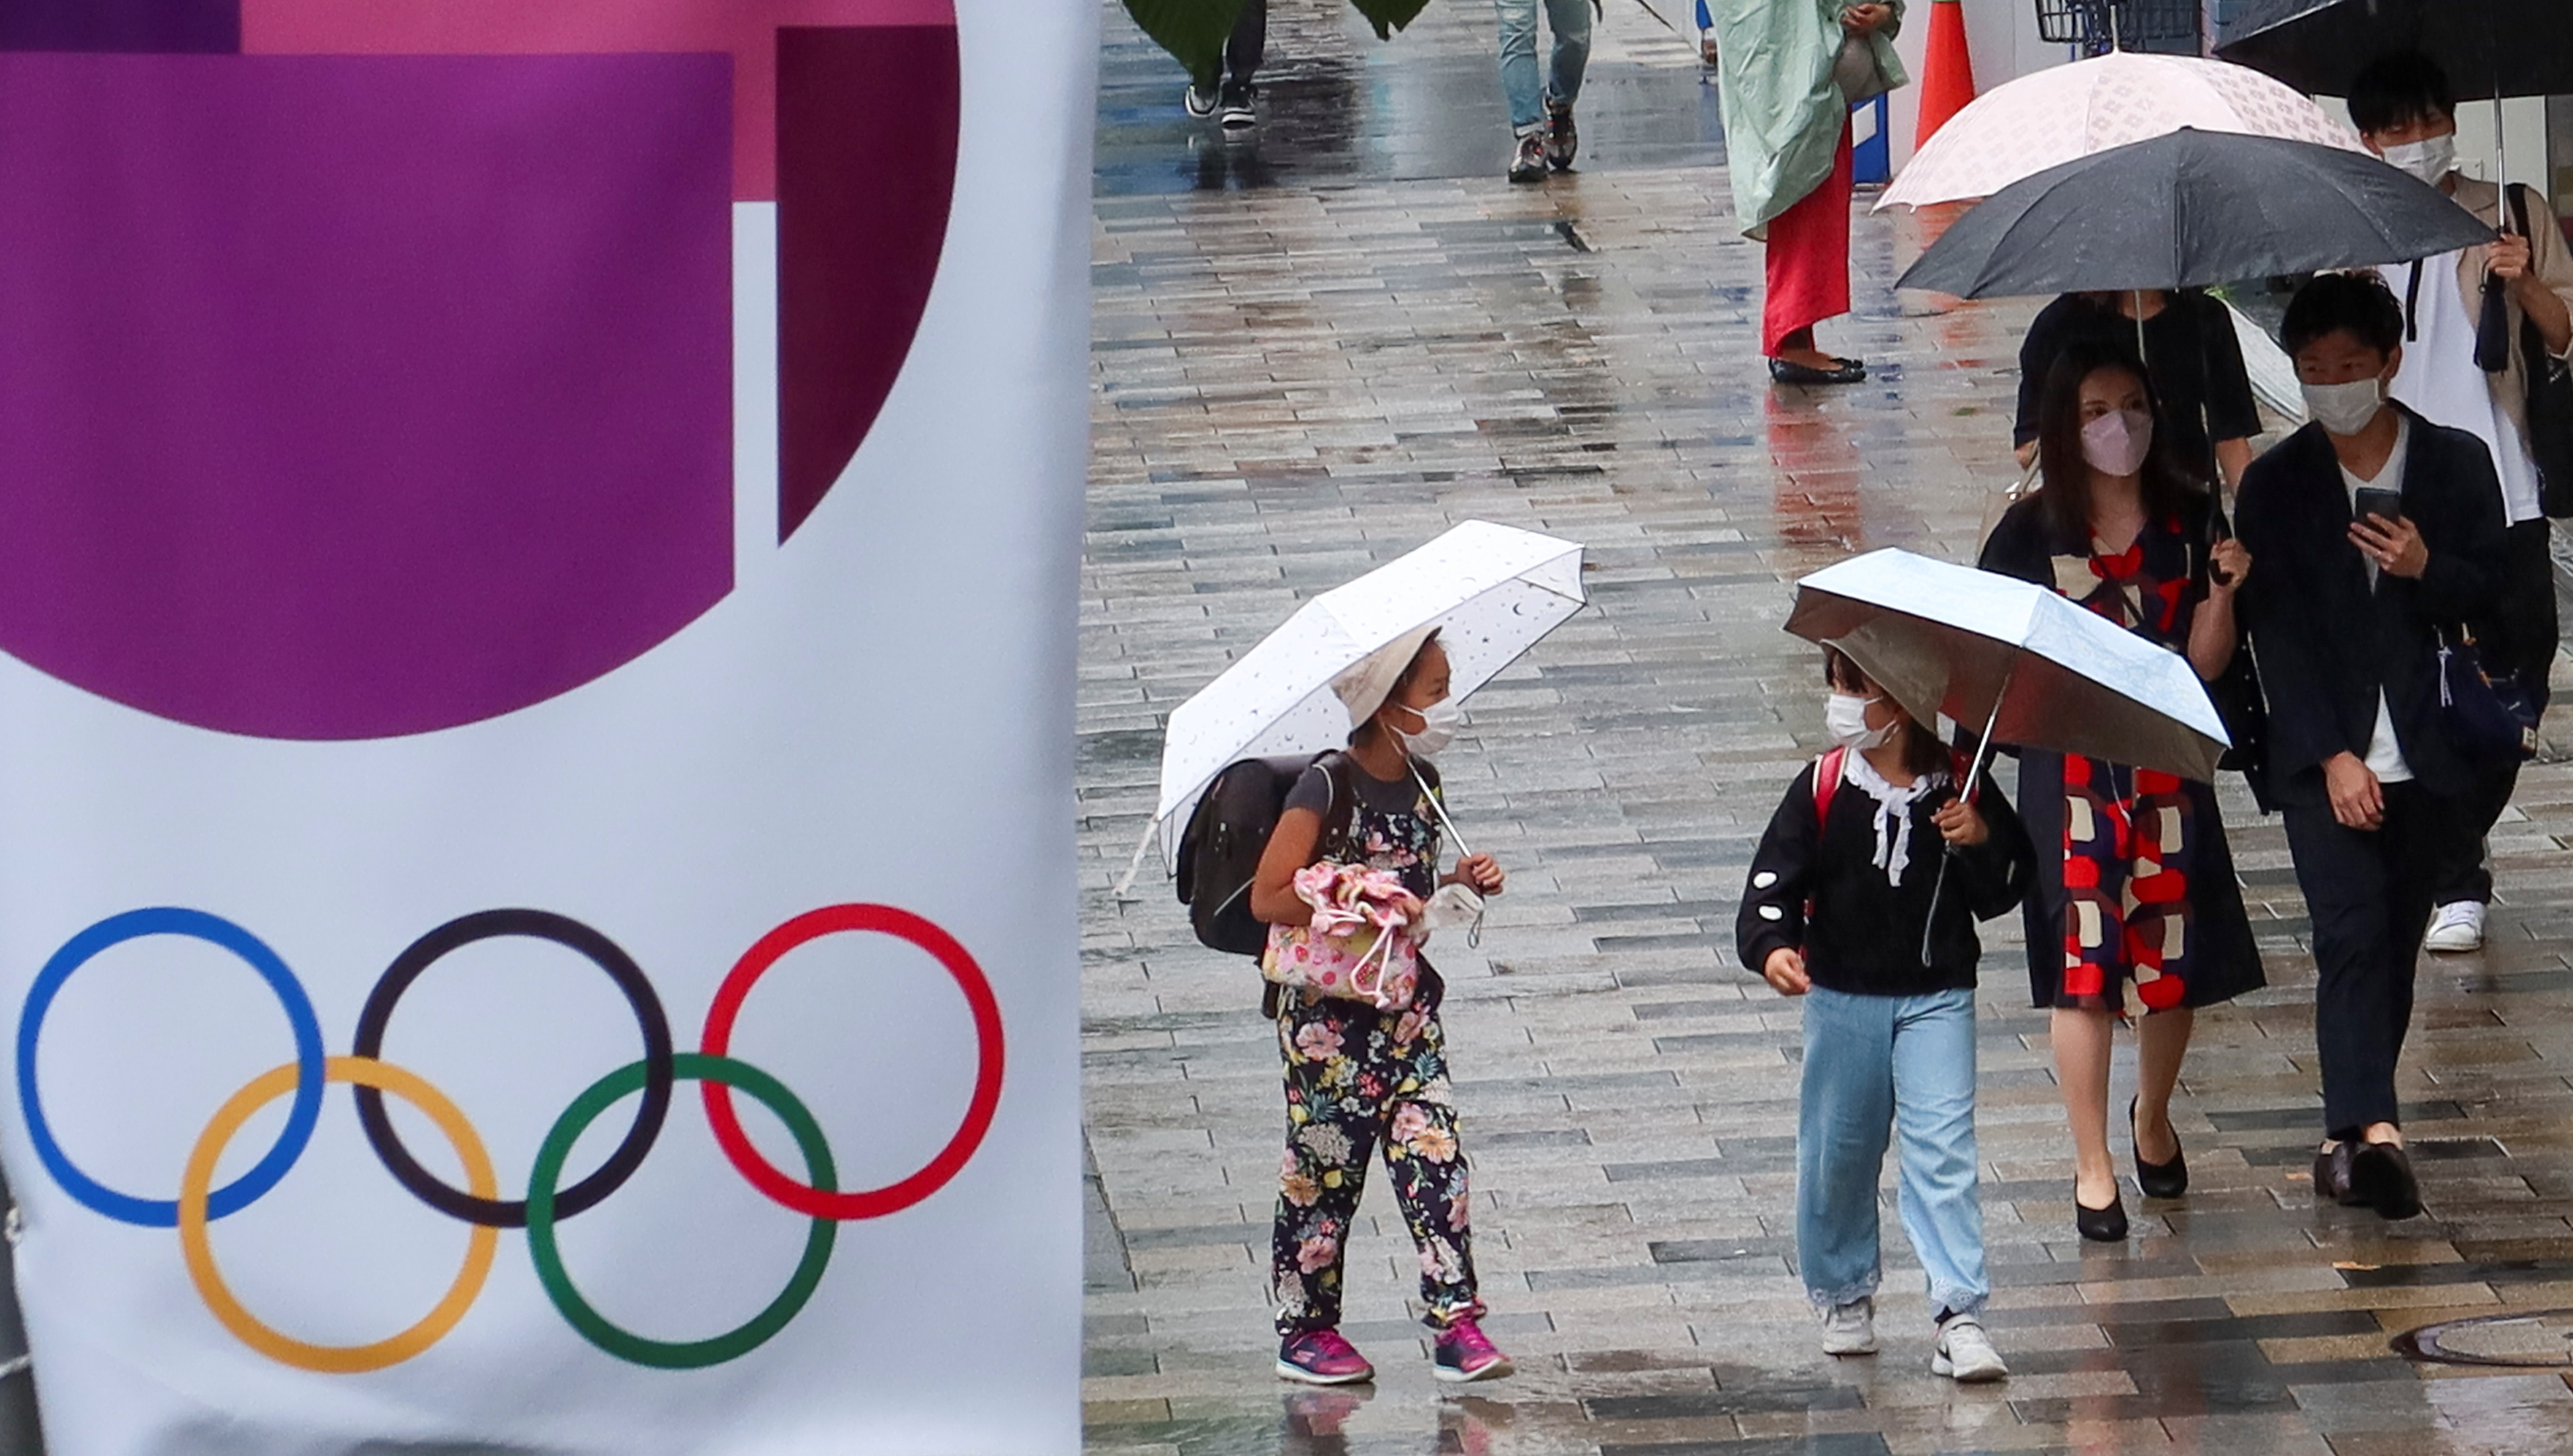 People walk on a street next to an advertisement for Tokyo 2020 Olympic and Paralympic Games, amid the coronavirus disease (COVID-19) pandemic, in Tokyo, Japan June 19, 2021. REUTERS/Pawel Kopczynski